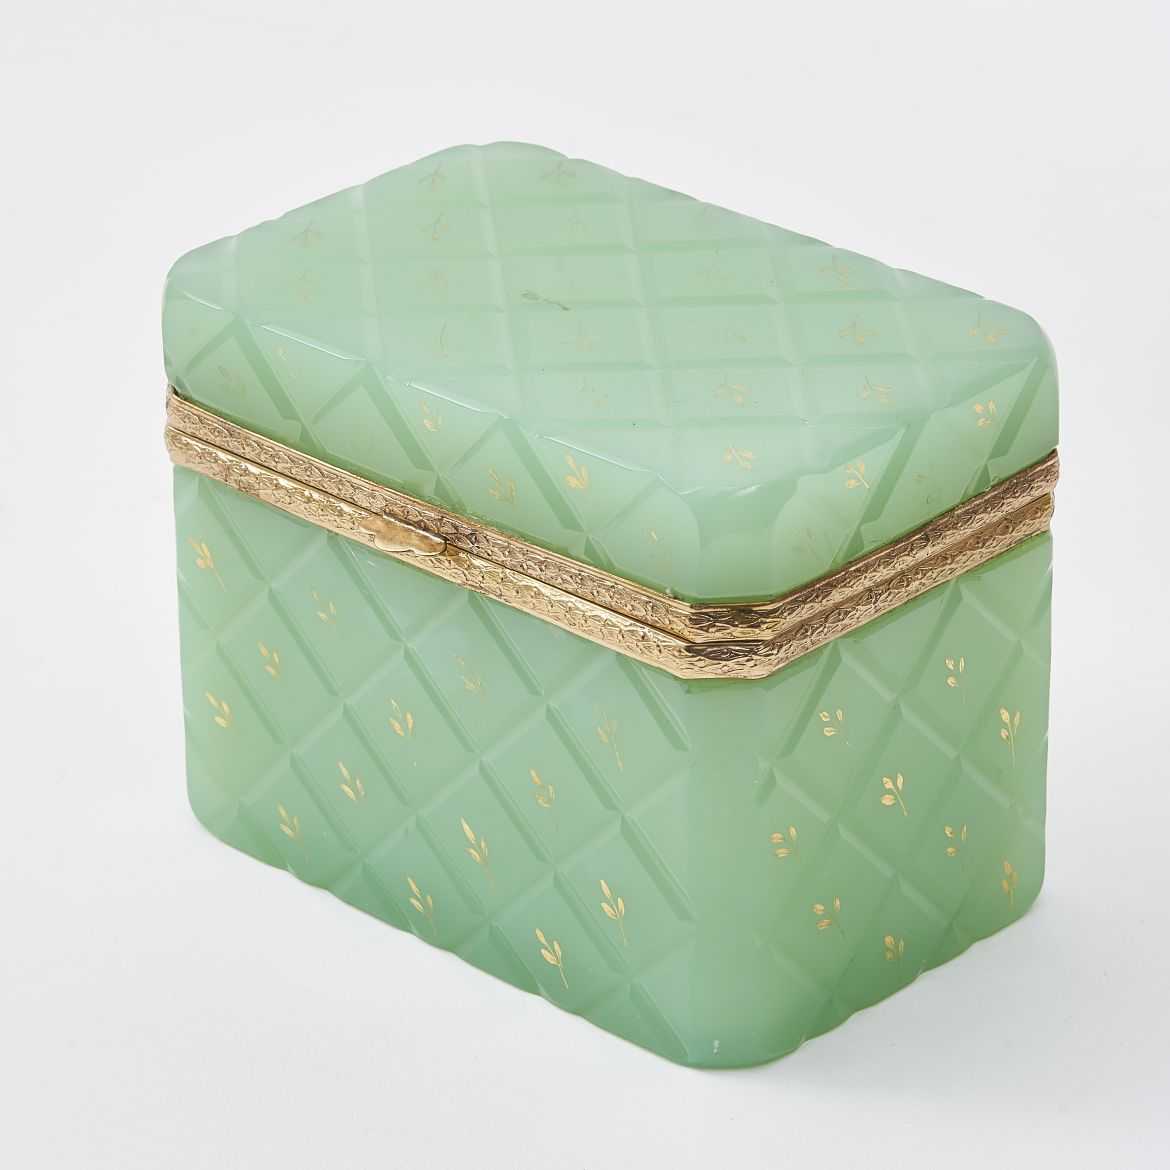 Pale Green Glass Box With Gilt Overlay Decoration